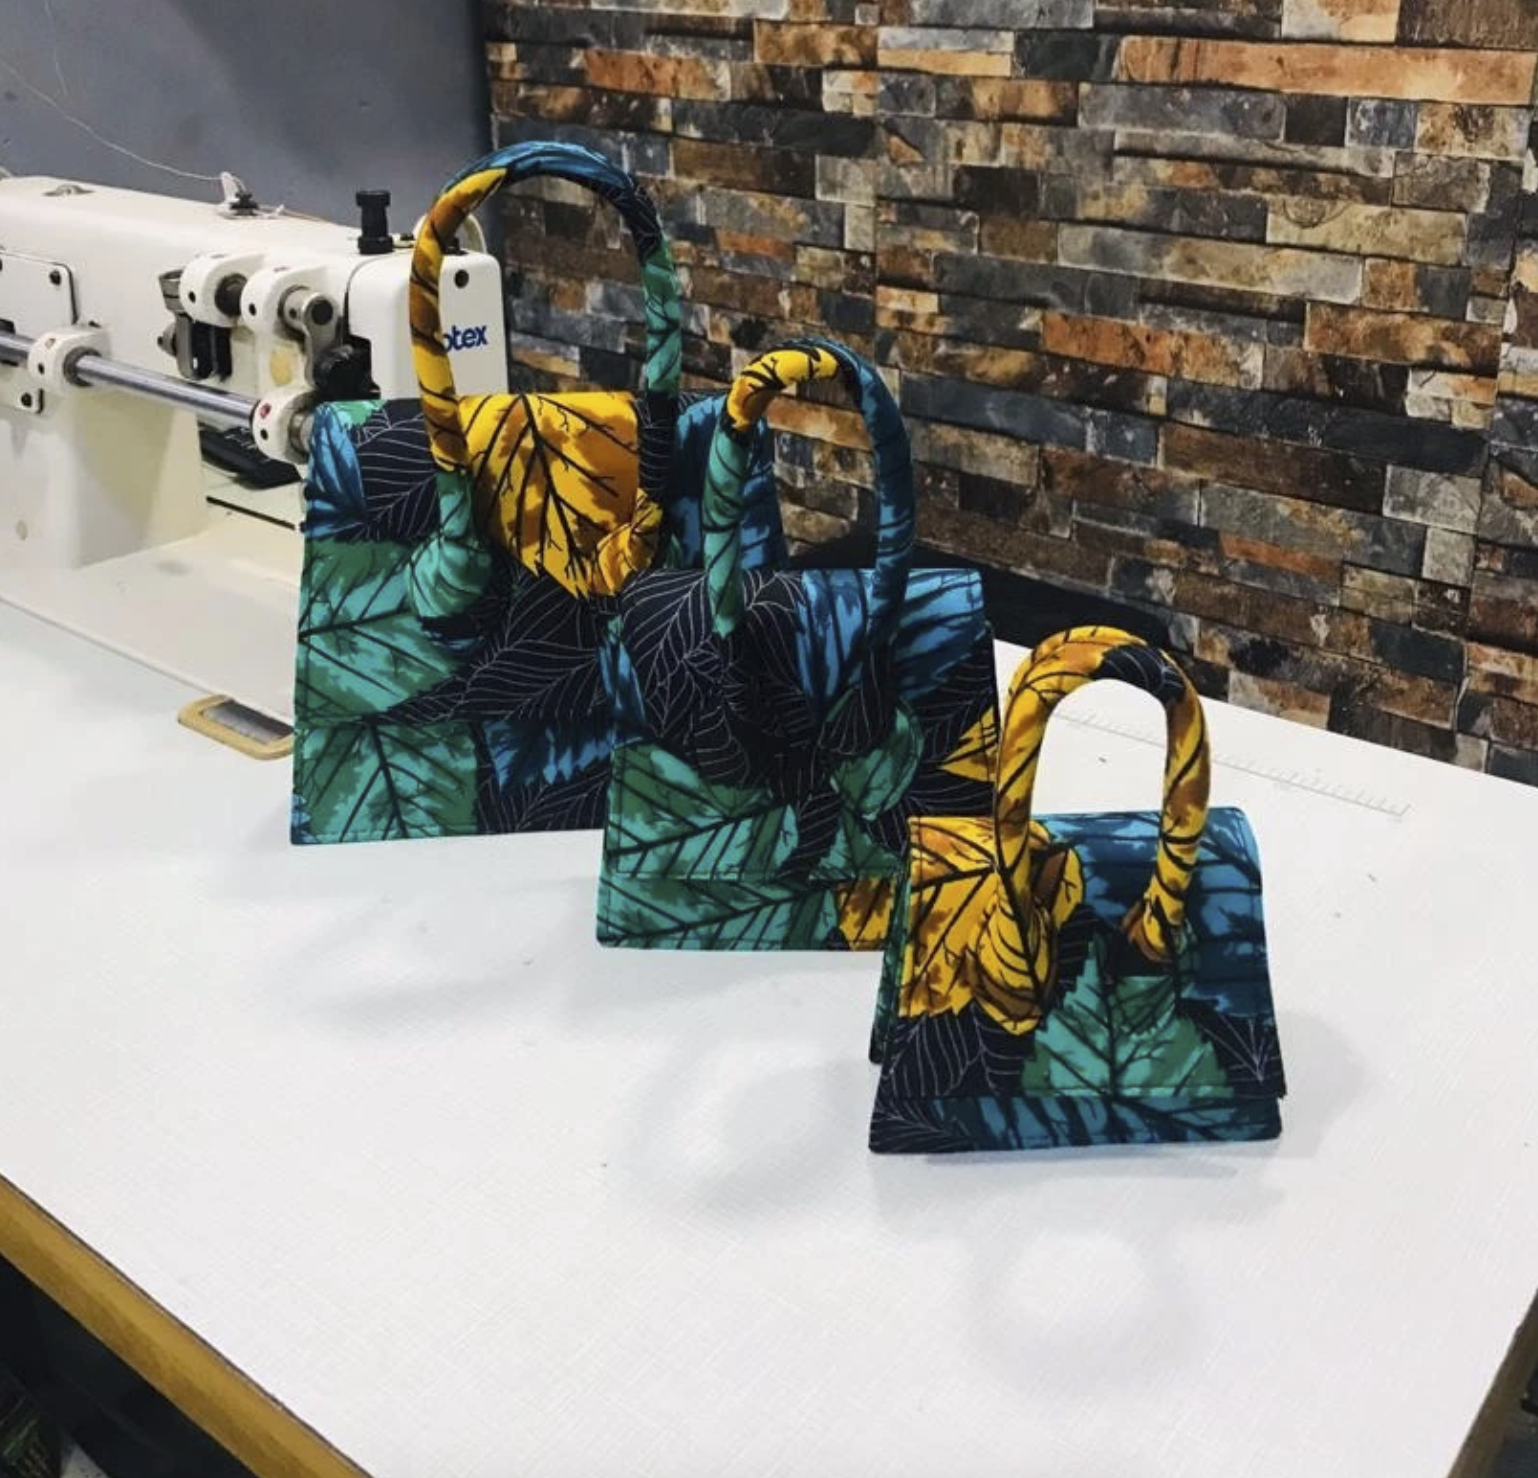 three bags in sizes graduating from small to largest with the sample floral print that's a green, blue, and yellow